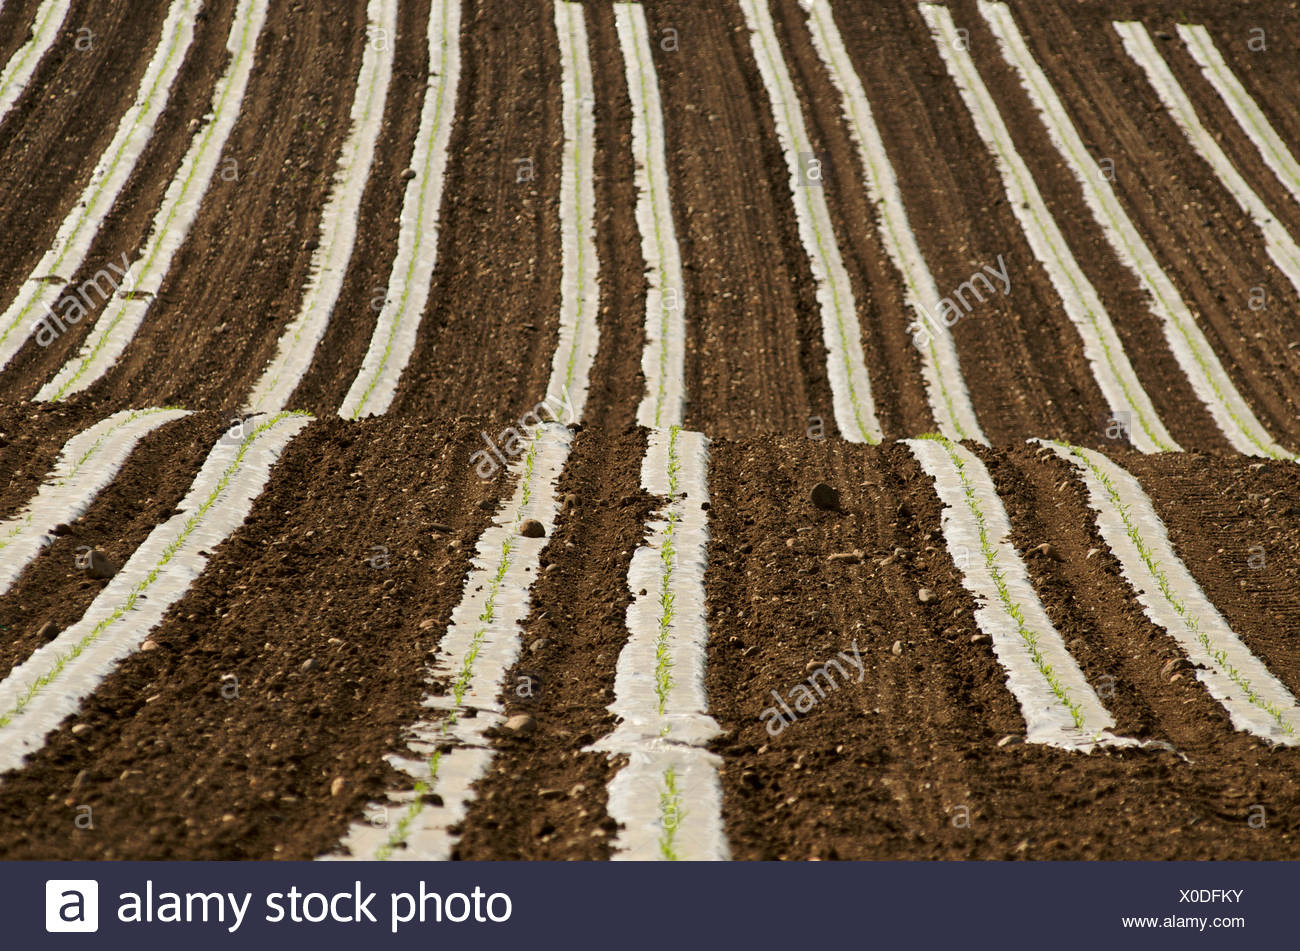 Sunflower (Helianthus annuus) seedlings in a field, Limagne, Auvergne, France, Europe Stock Photo